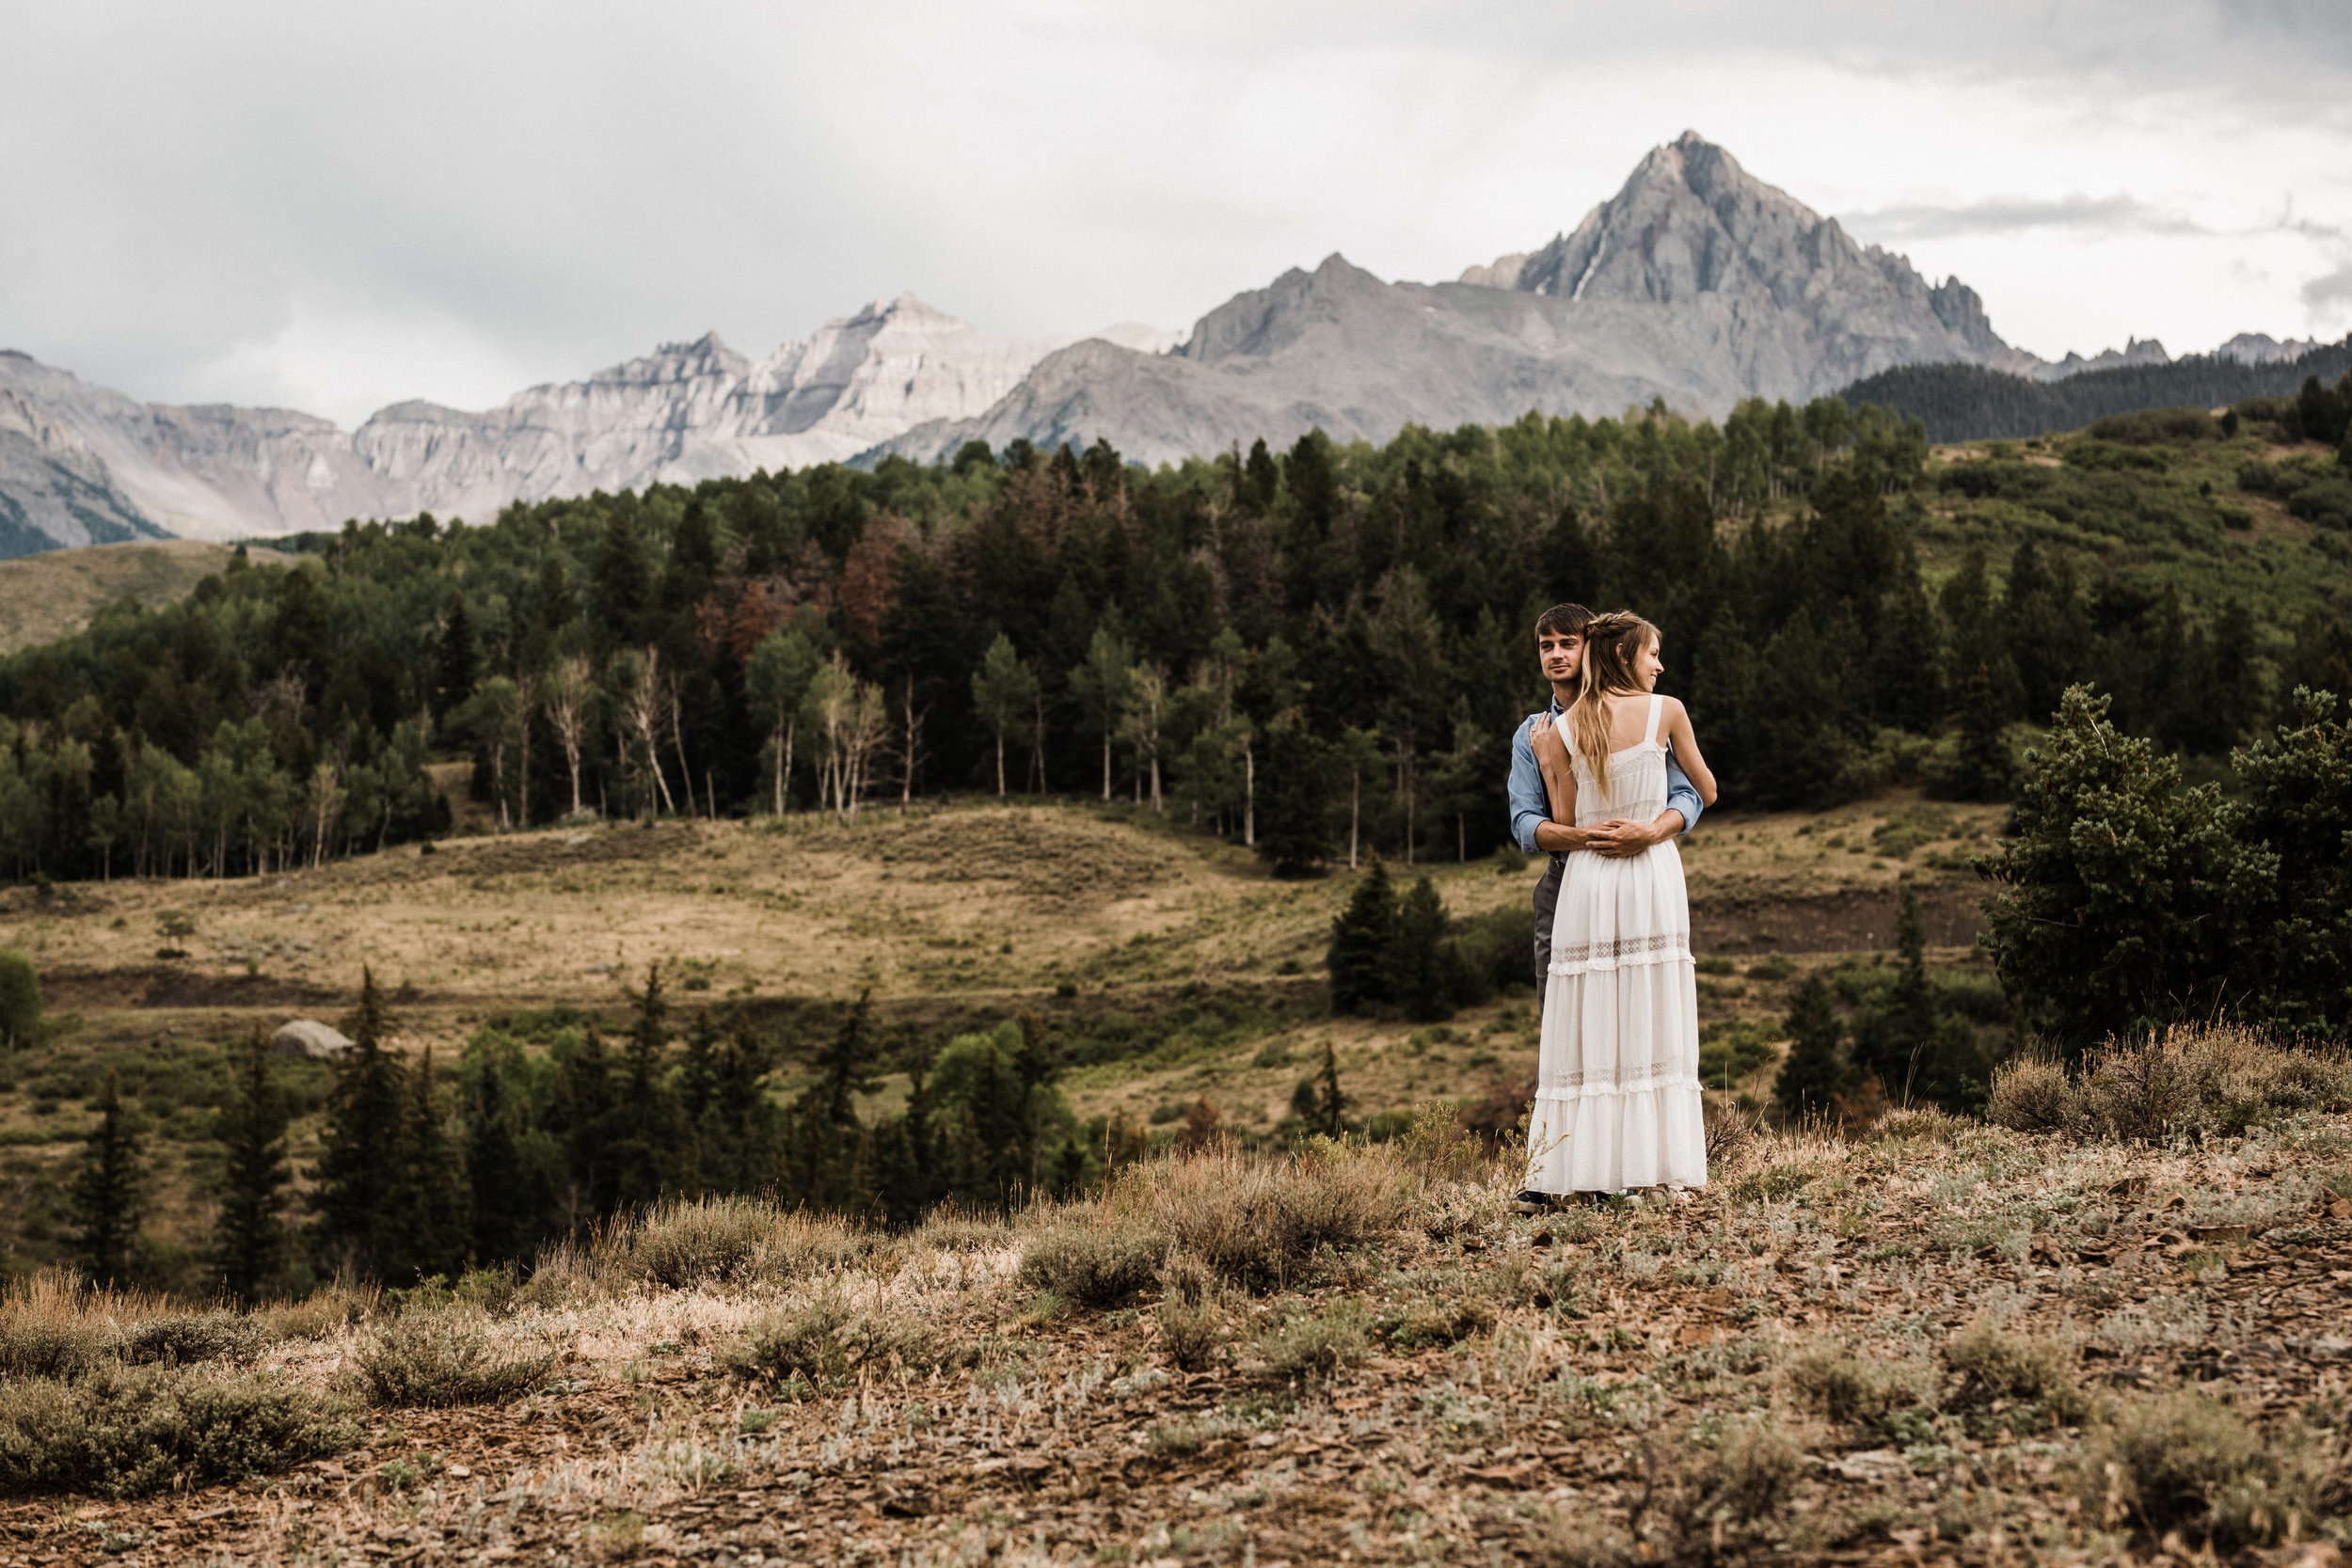 leahandashton-telluride-wedding-photography-KC-0110.jpg